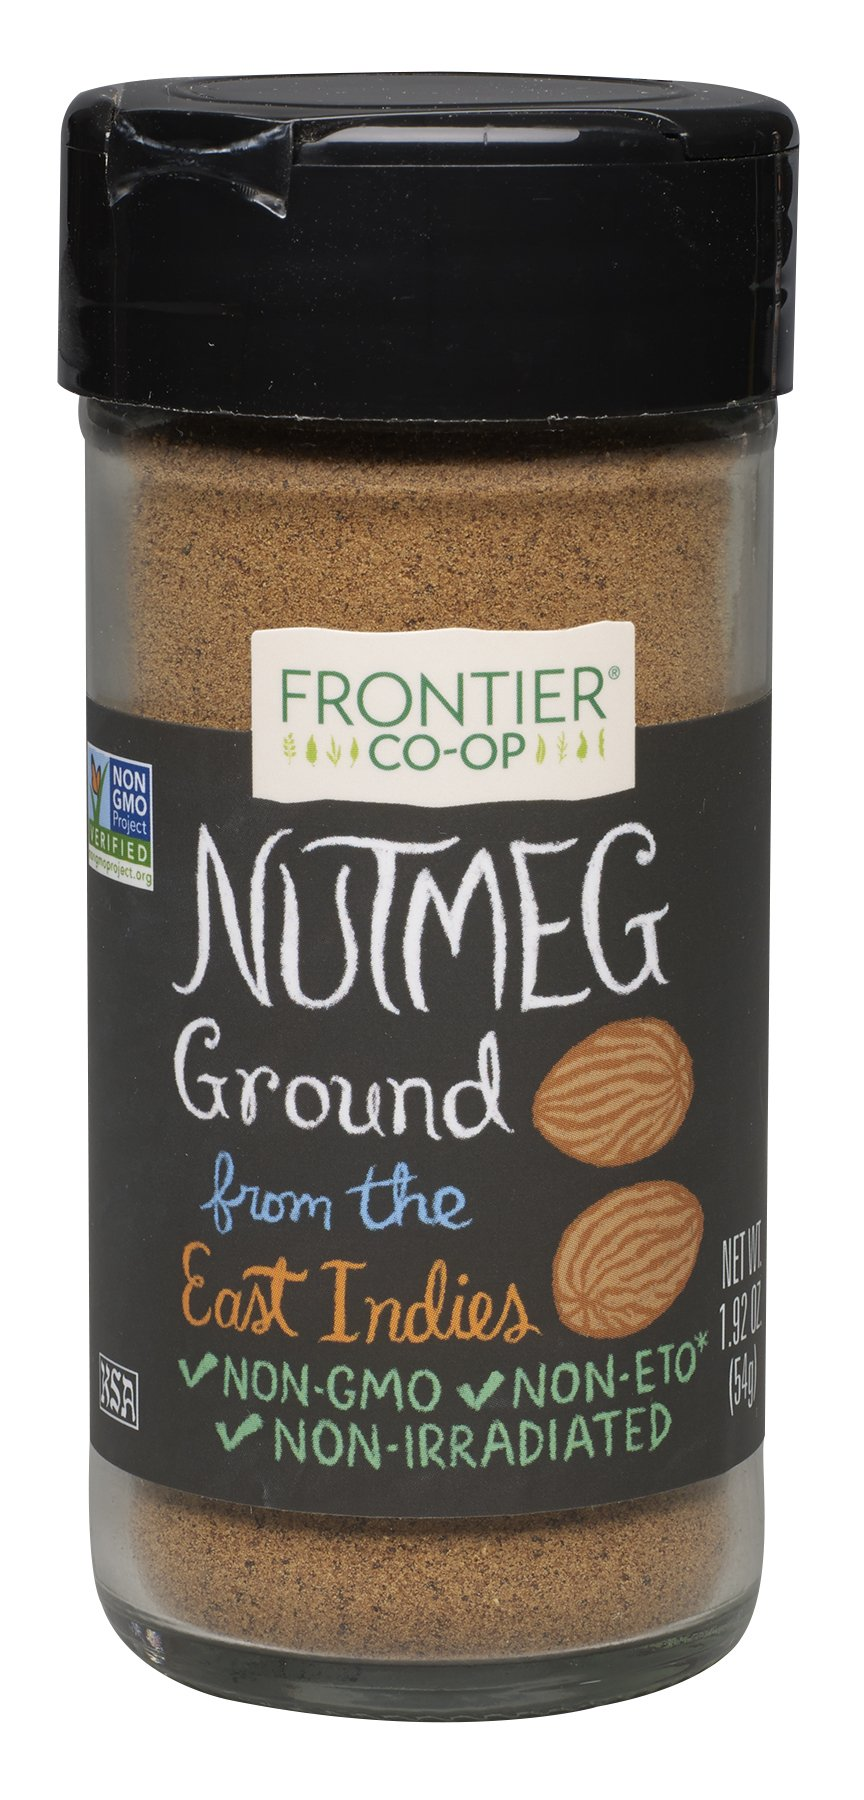 Frontier Culinary Spices Ground Nutmeg, 1.92-Ounce Bottles (Pack of 4)